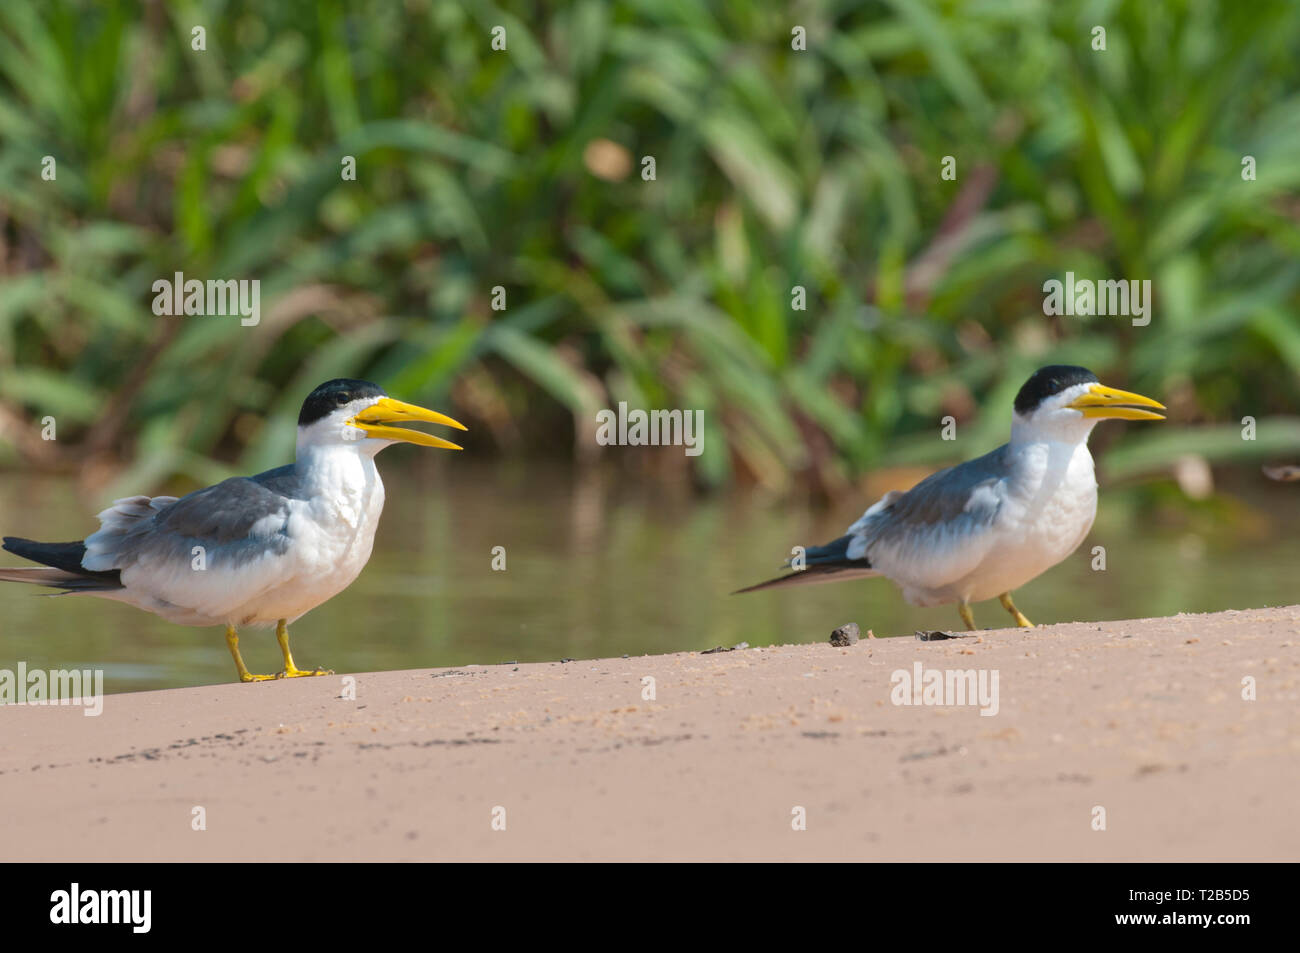 Large-billed terns (Phaetusa simplex) in the Pantanal Brazil - Stock Image